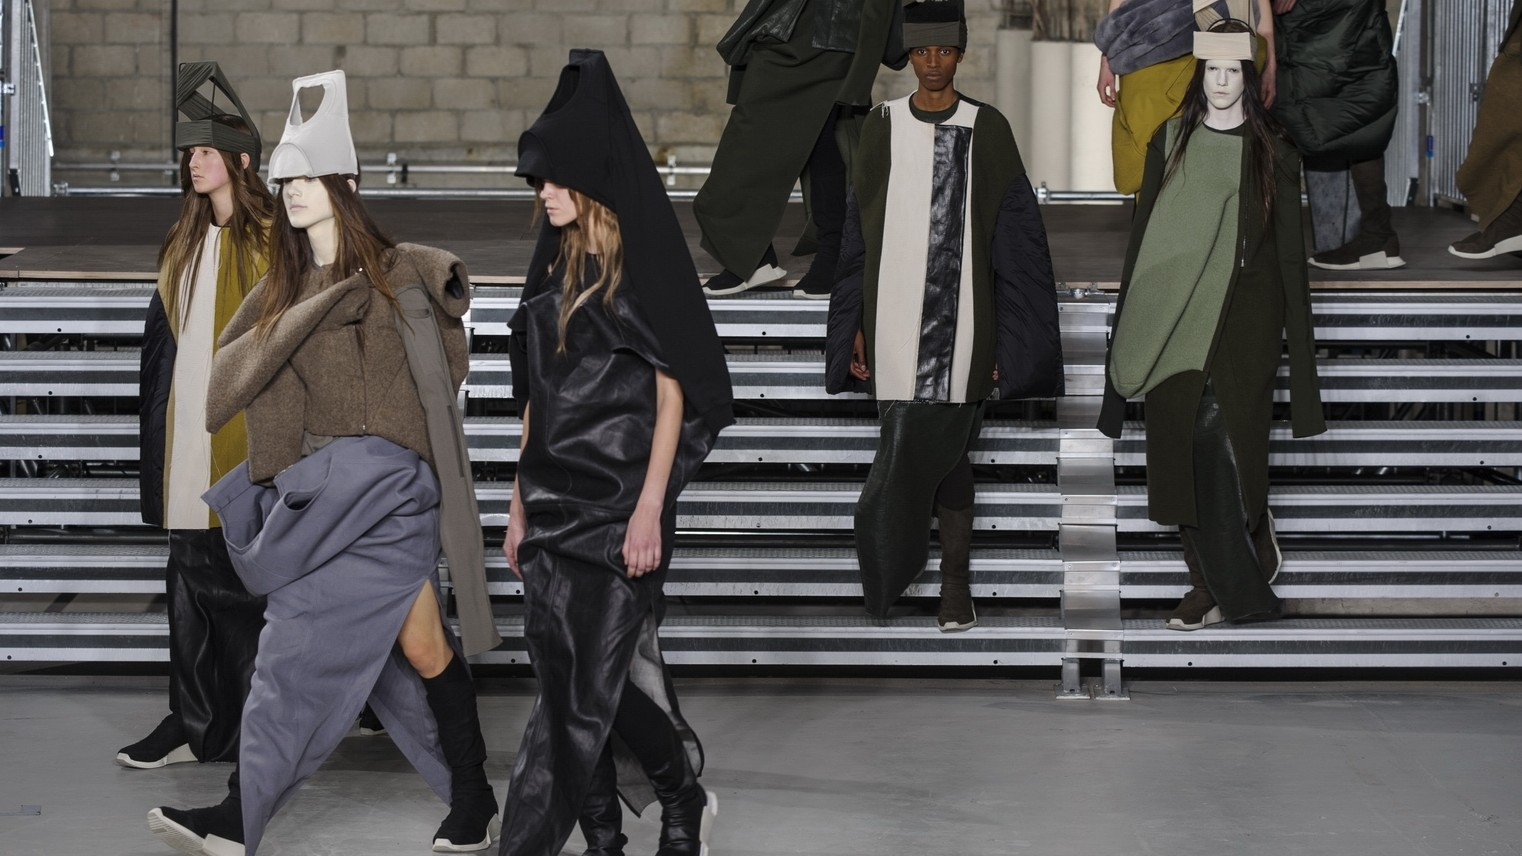 ceremony of our times: rick owens, chloé and balmain at paris fashion week